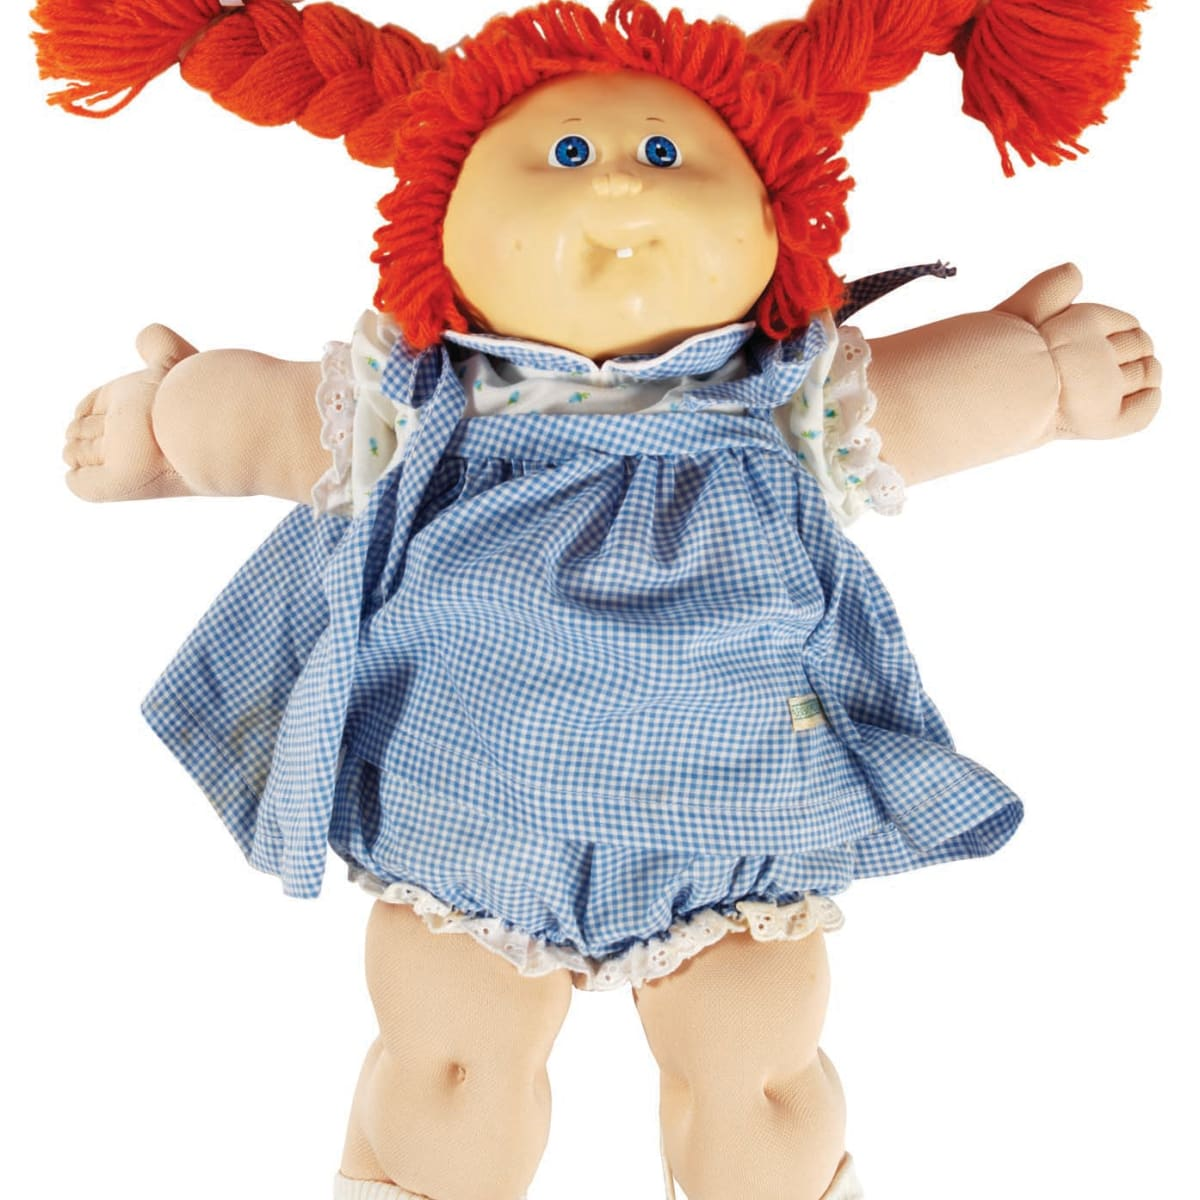 Cabbage Patch Kids Craze Born in 1980s   Antique Trader